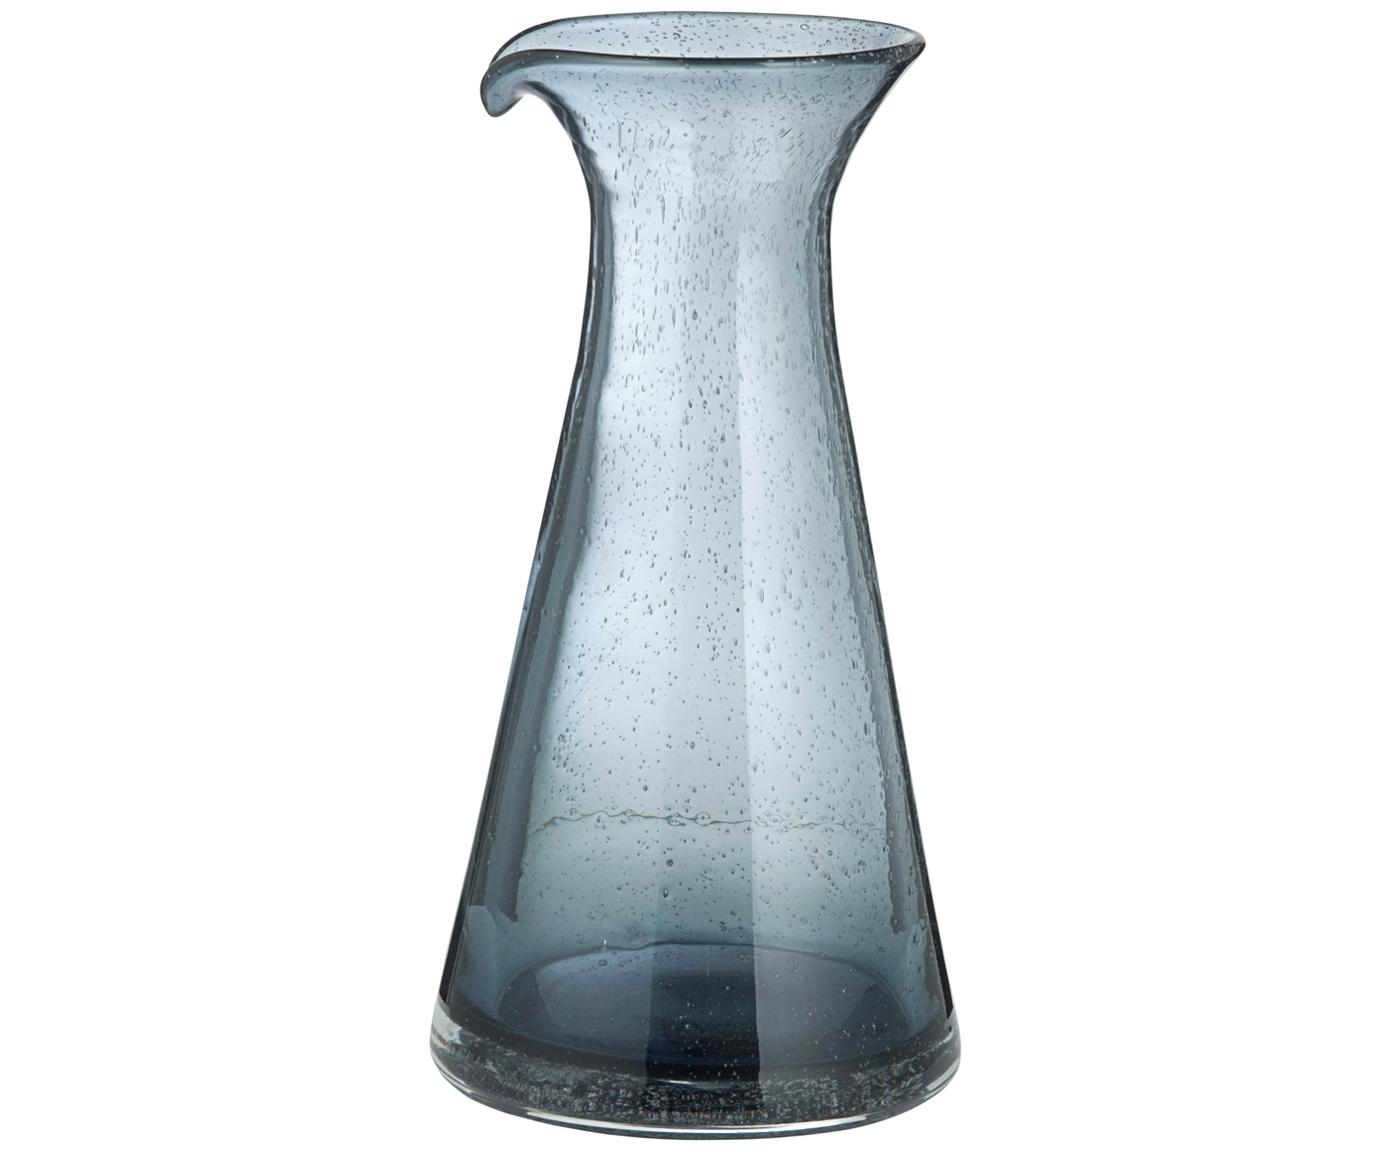 Mondgeblazen karaf Bubble, Glas, Transparant, grijs, 800 ml